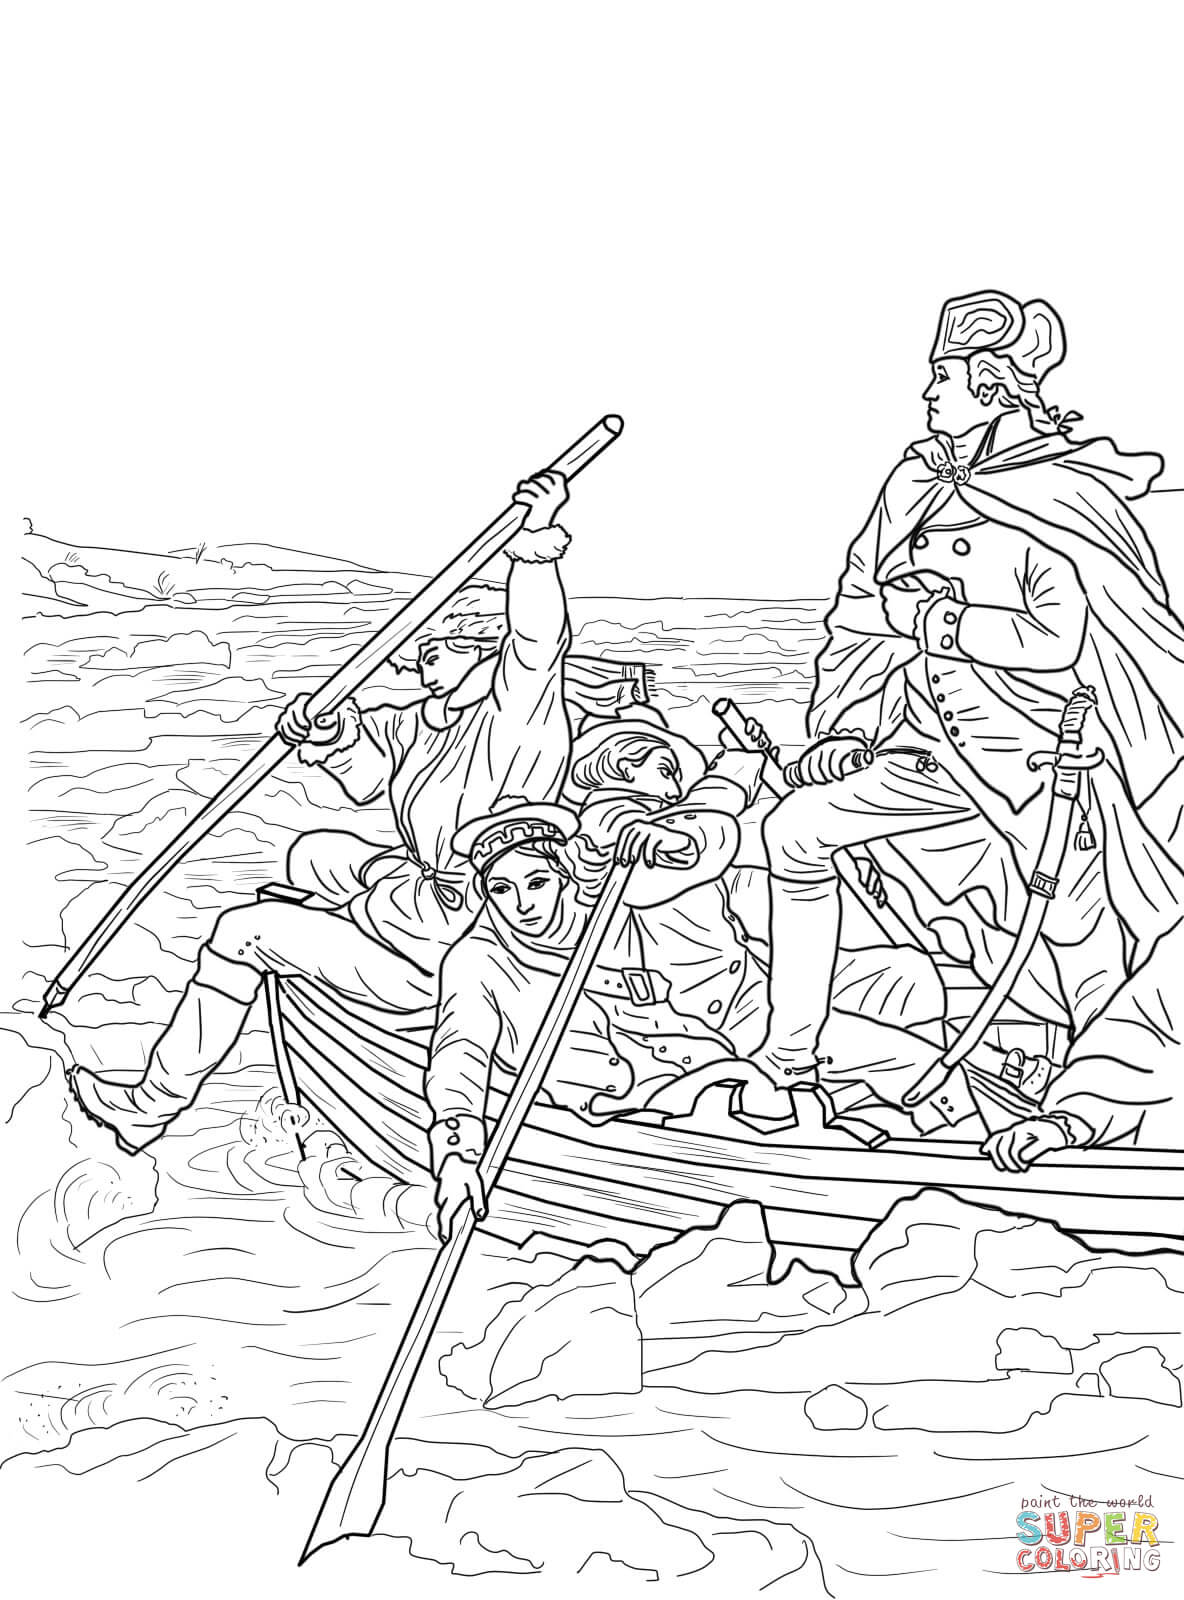 George Washington Coloring Pages For Kids Coloring Home George Washington Coloring Page